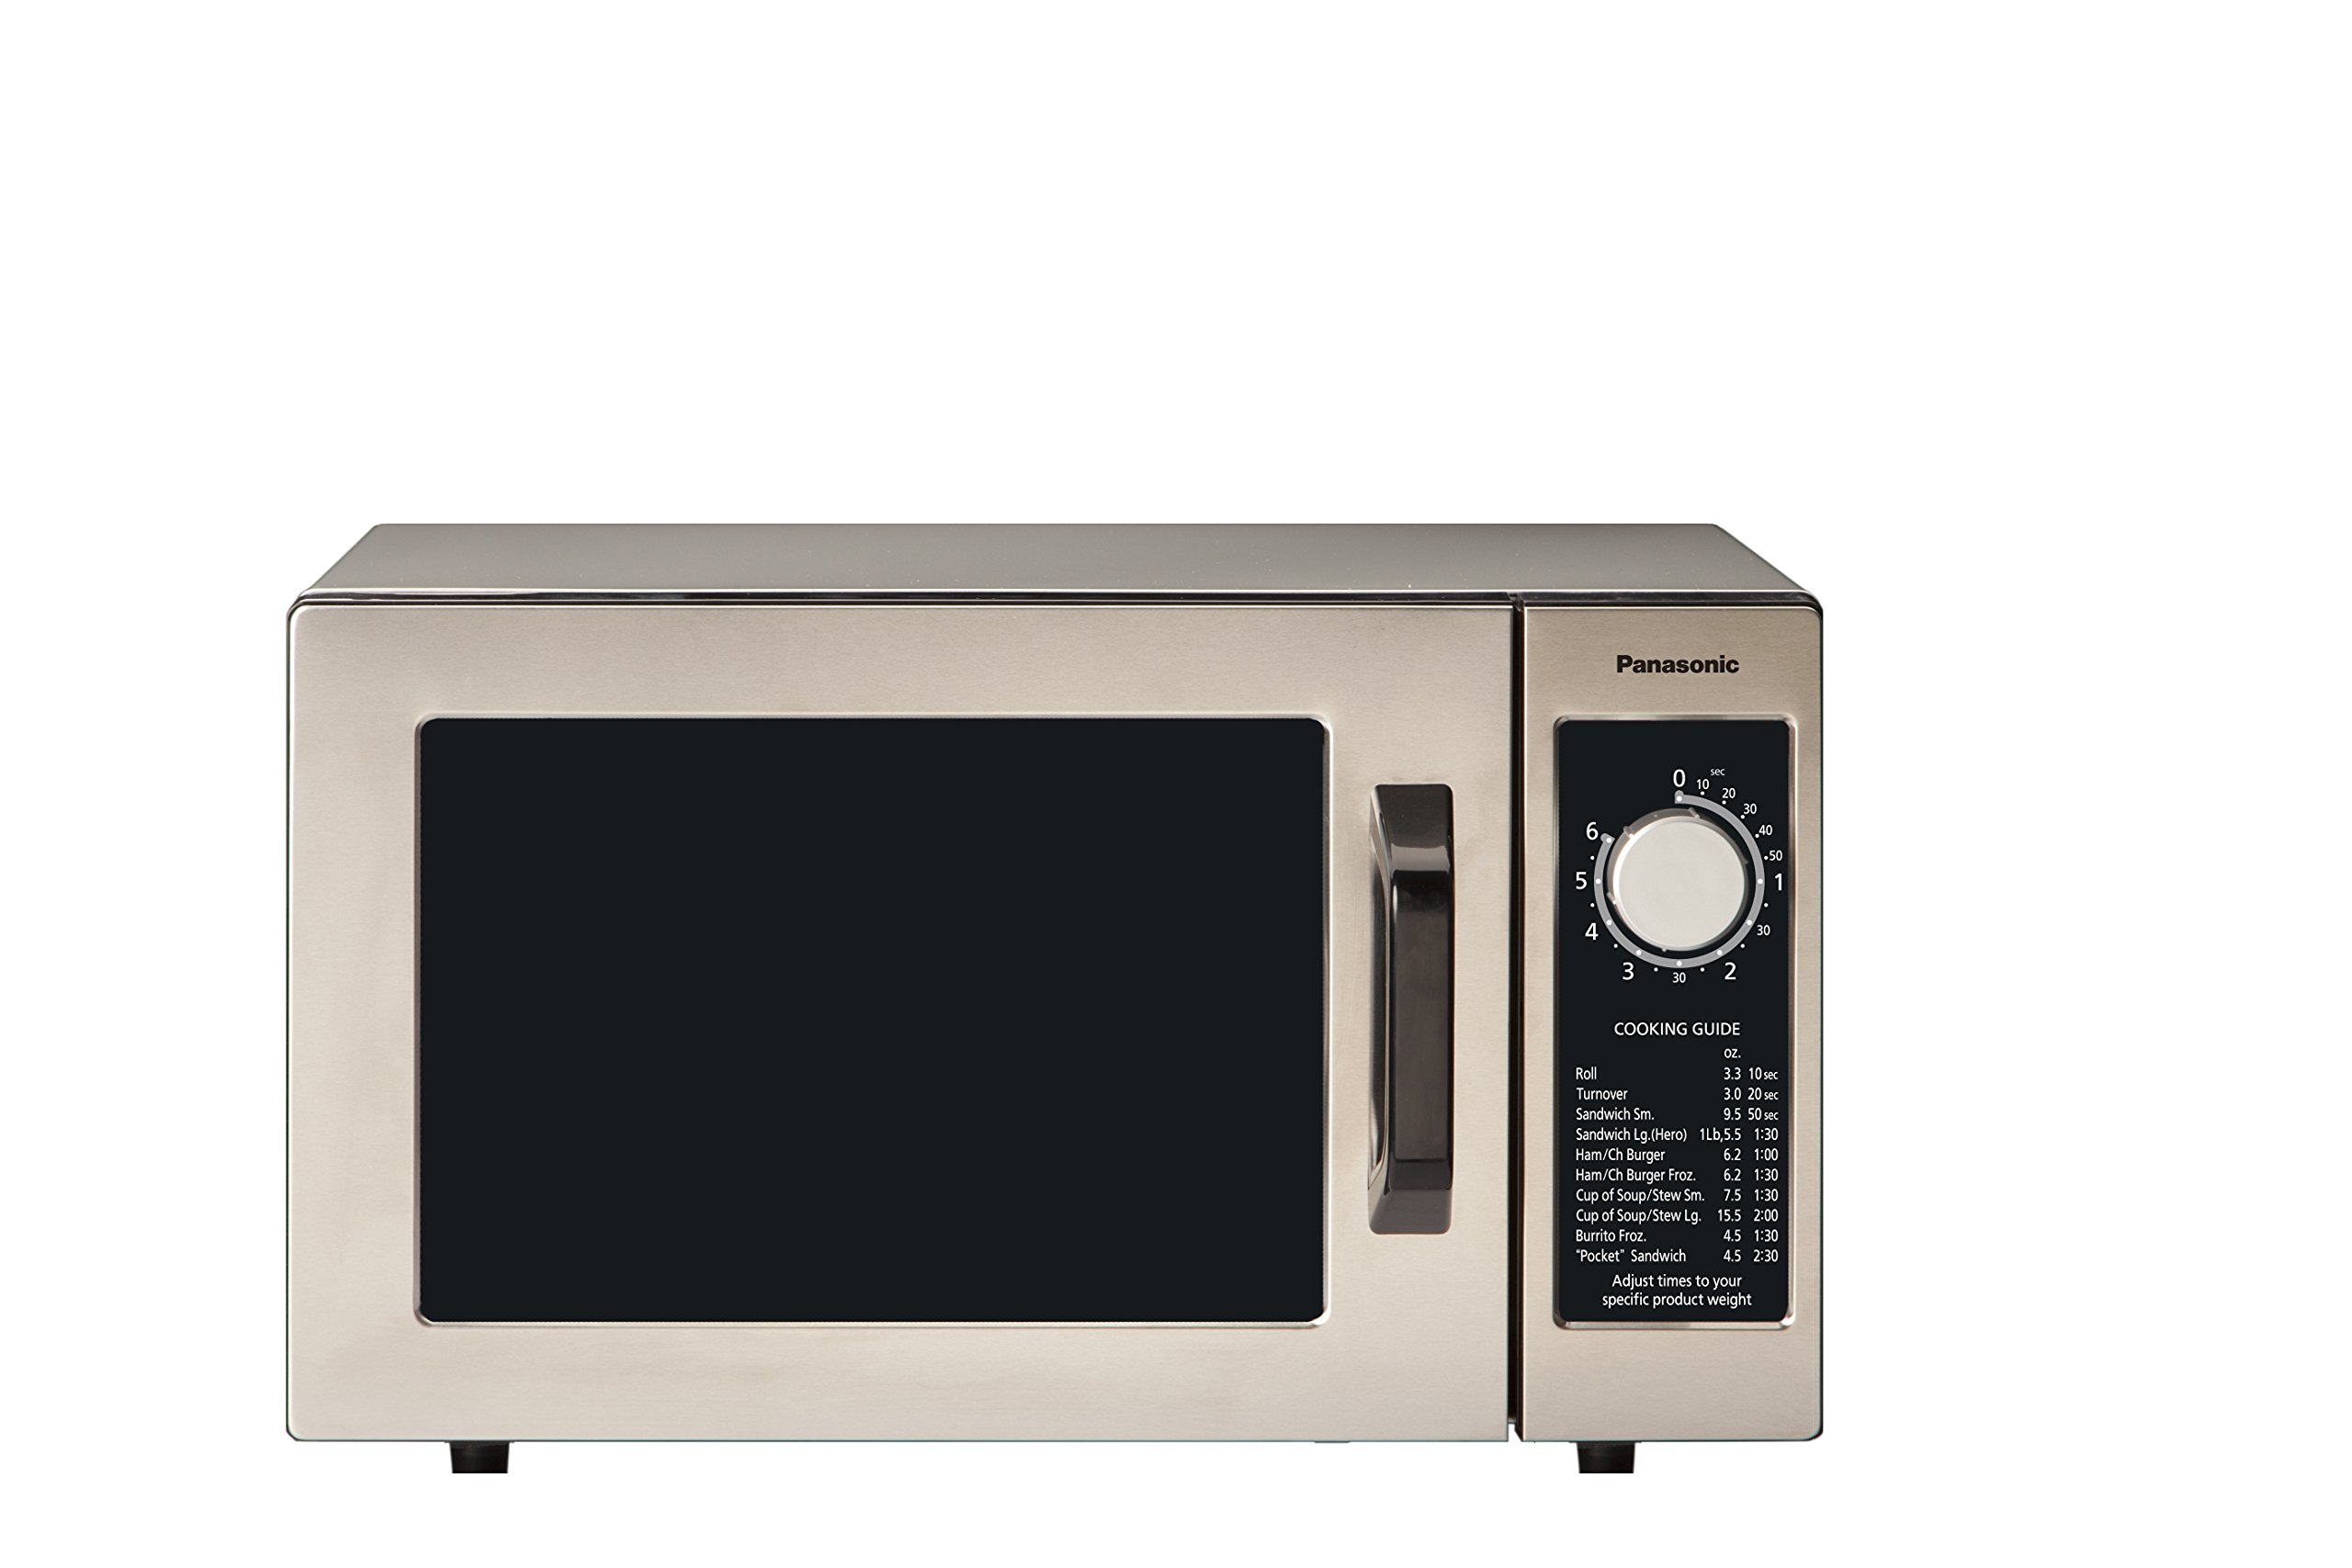 Panasonic NE-1025F Silver 1000W Commercial Microwave Oven by Panasonic